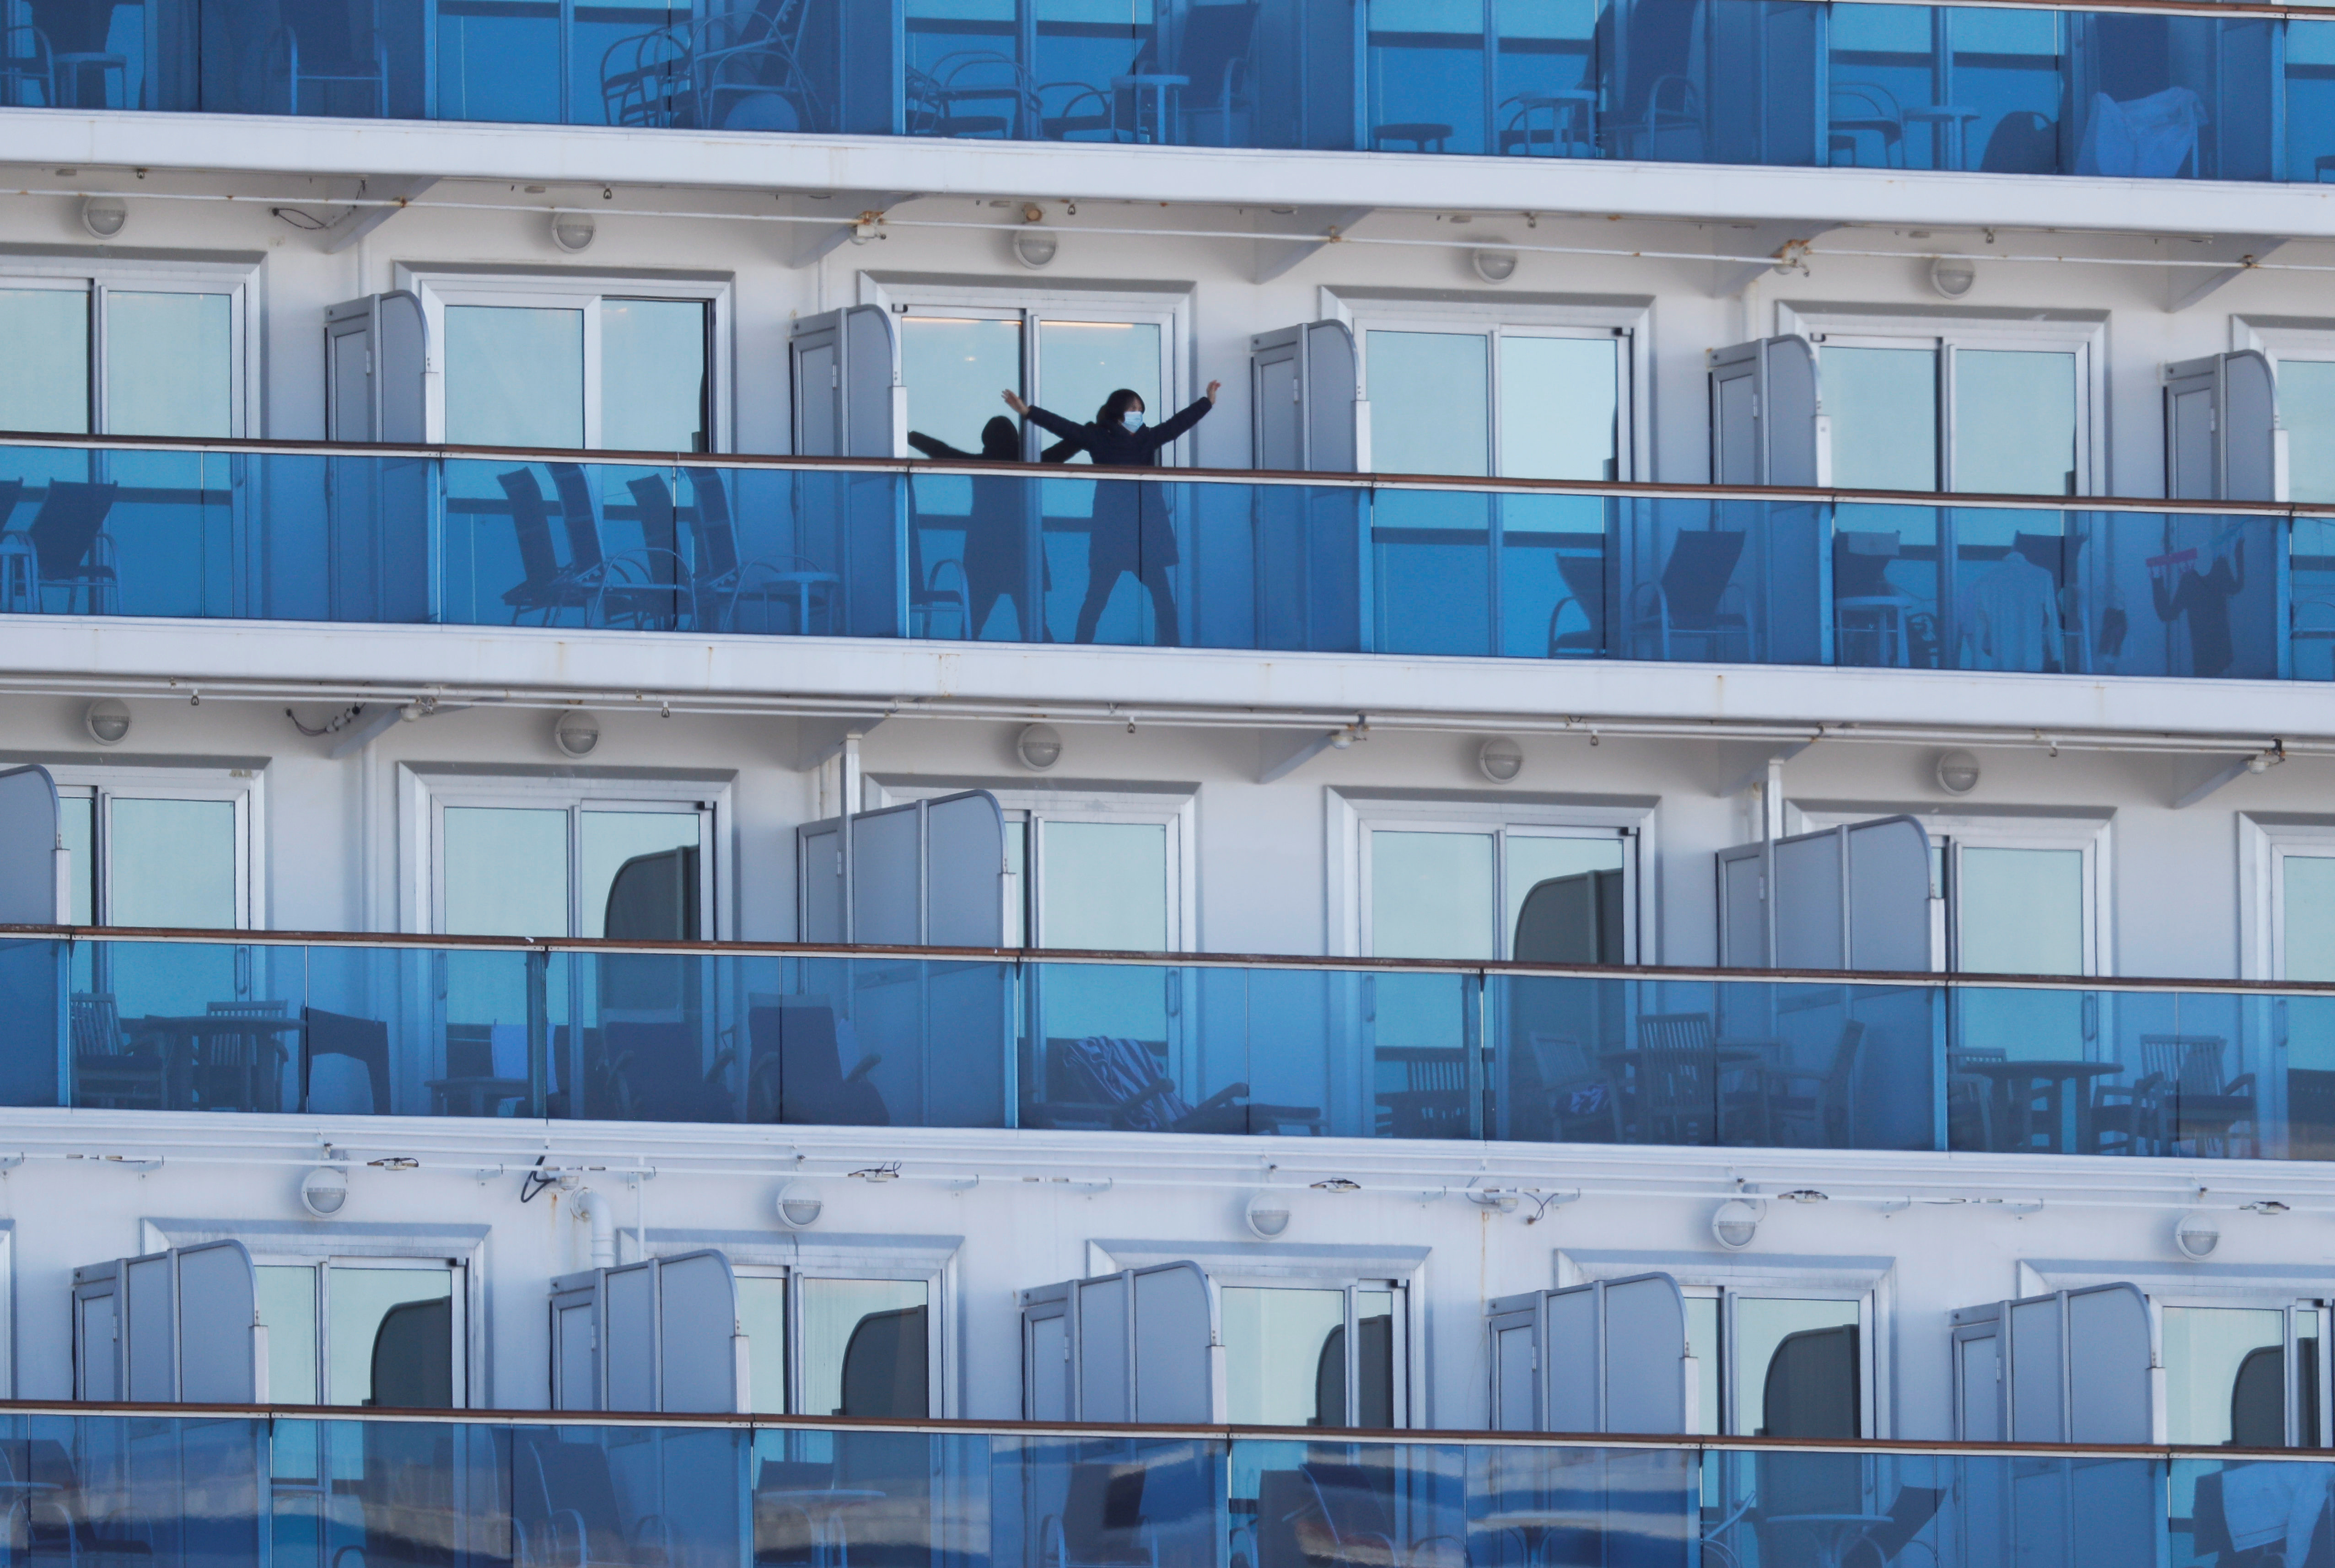 Fear, Boredom, Adventure Fill Each Day on Quarantined Ship in Japanese Port